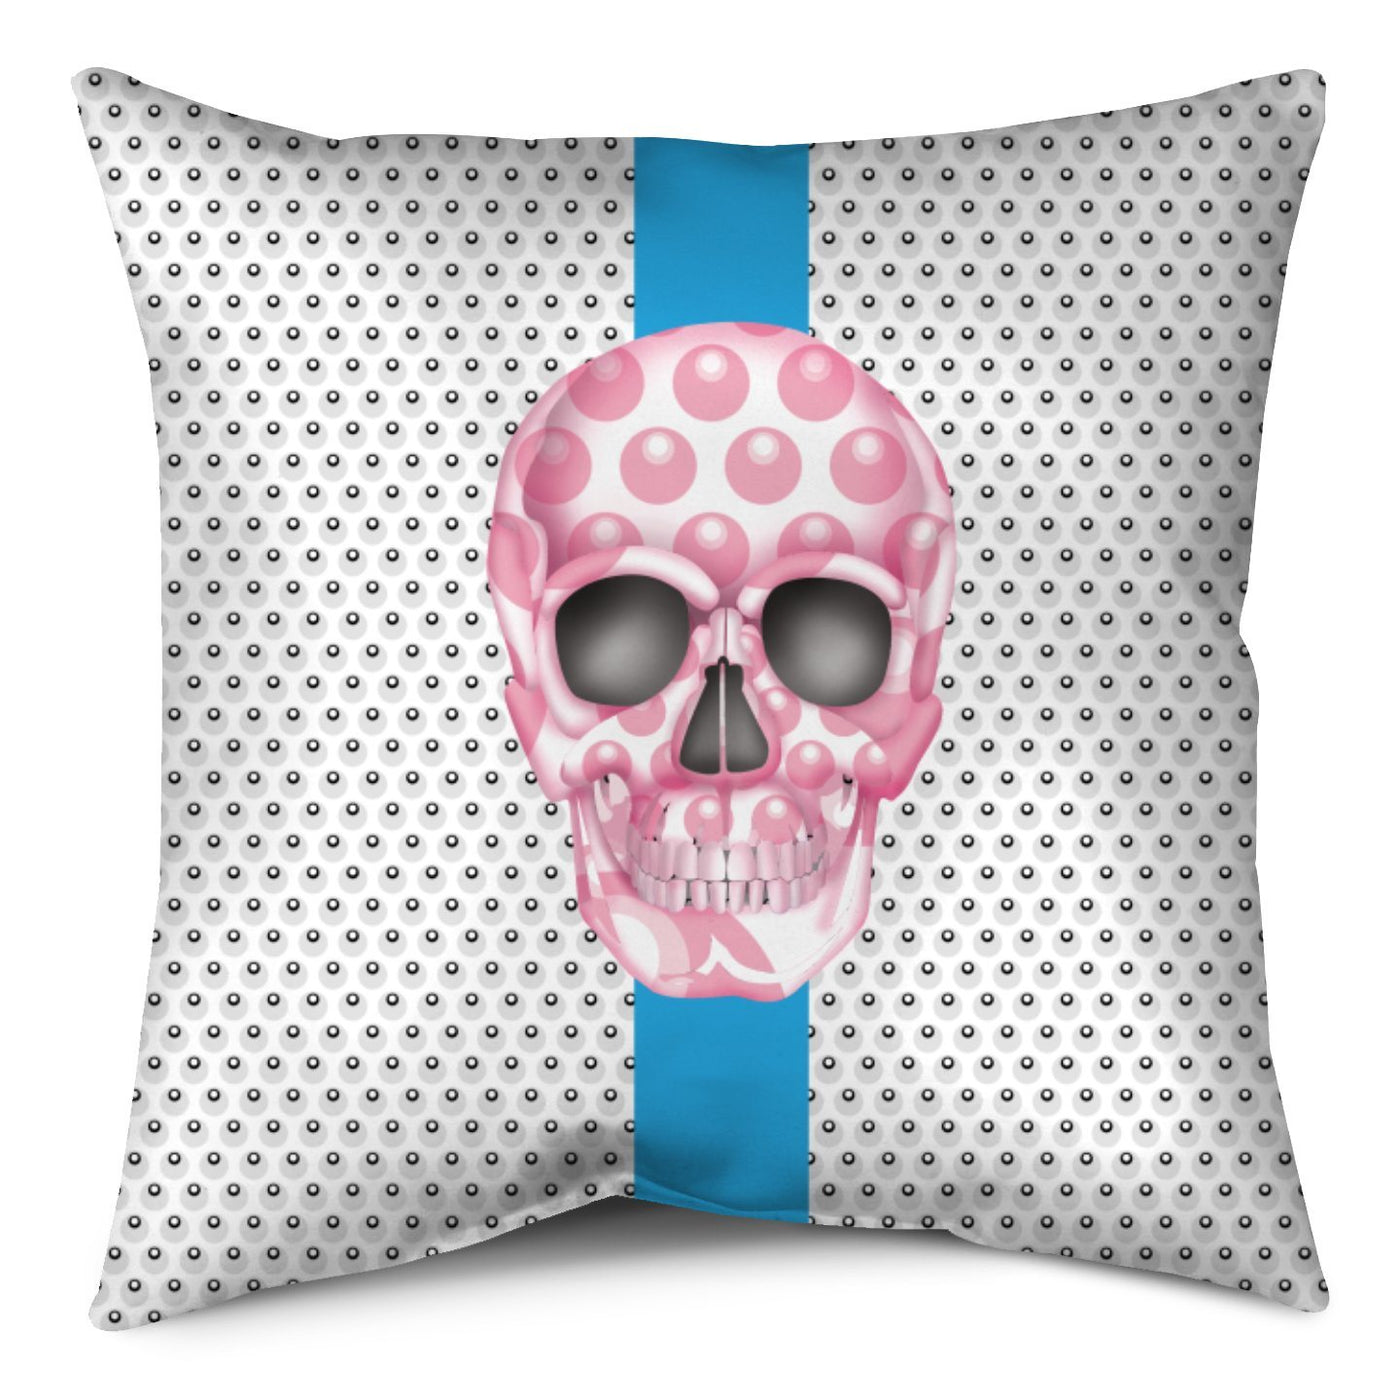 Throw Pillow - Skull Luna Stripe Nero/Pink throw LeighDeux, LLC